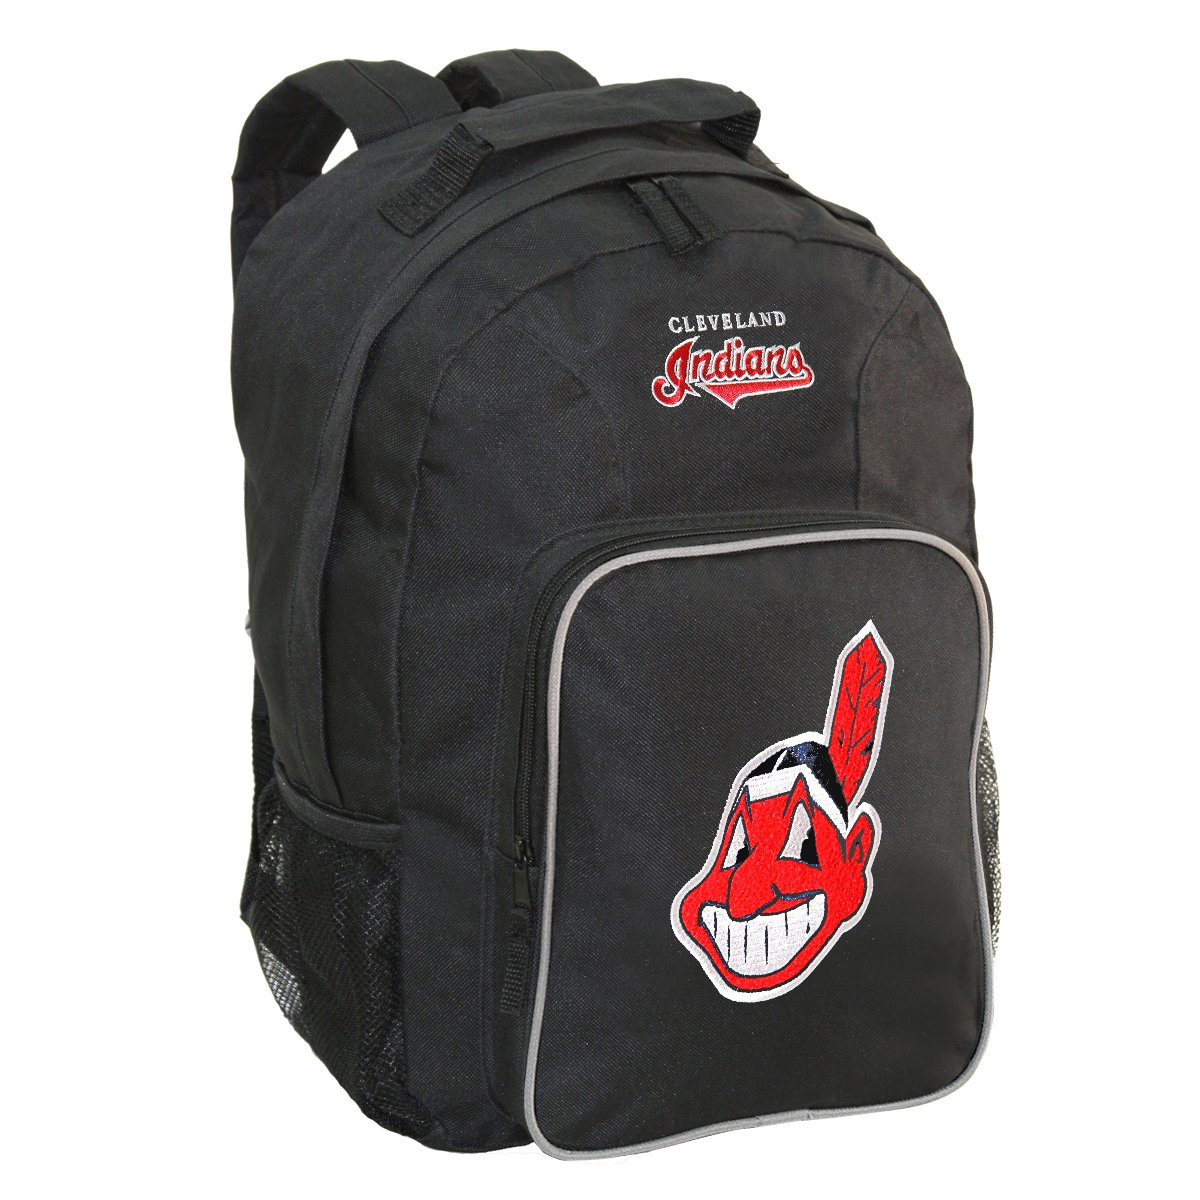 Cleveland Indians Backpack at Sears.com